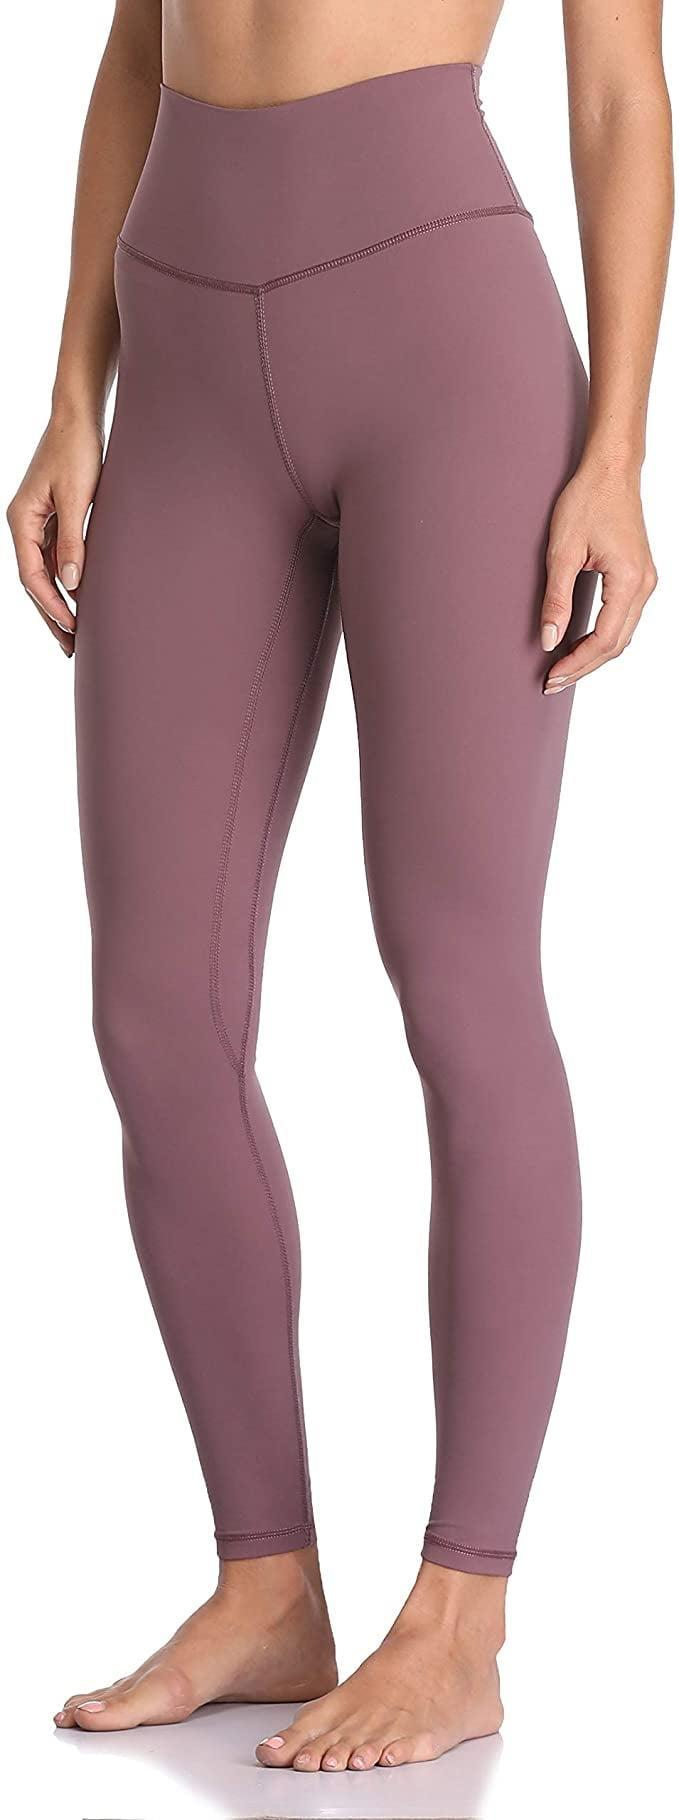 <p>Customers can't get enough of the <span>Colorfulkoala Buttery Soft High Waisted Yoga Pants</span> ($23), and it's easy to see why. They definitely live up to their name.</p>